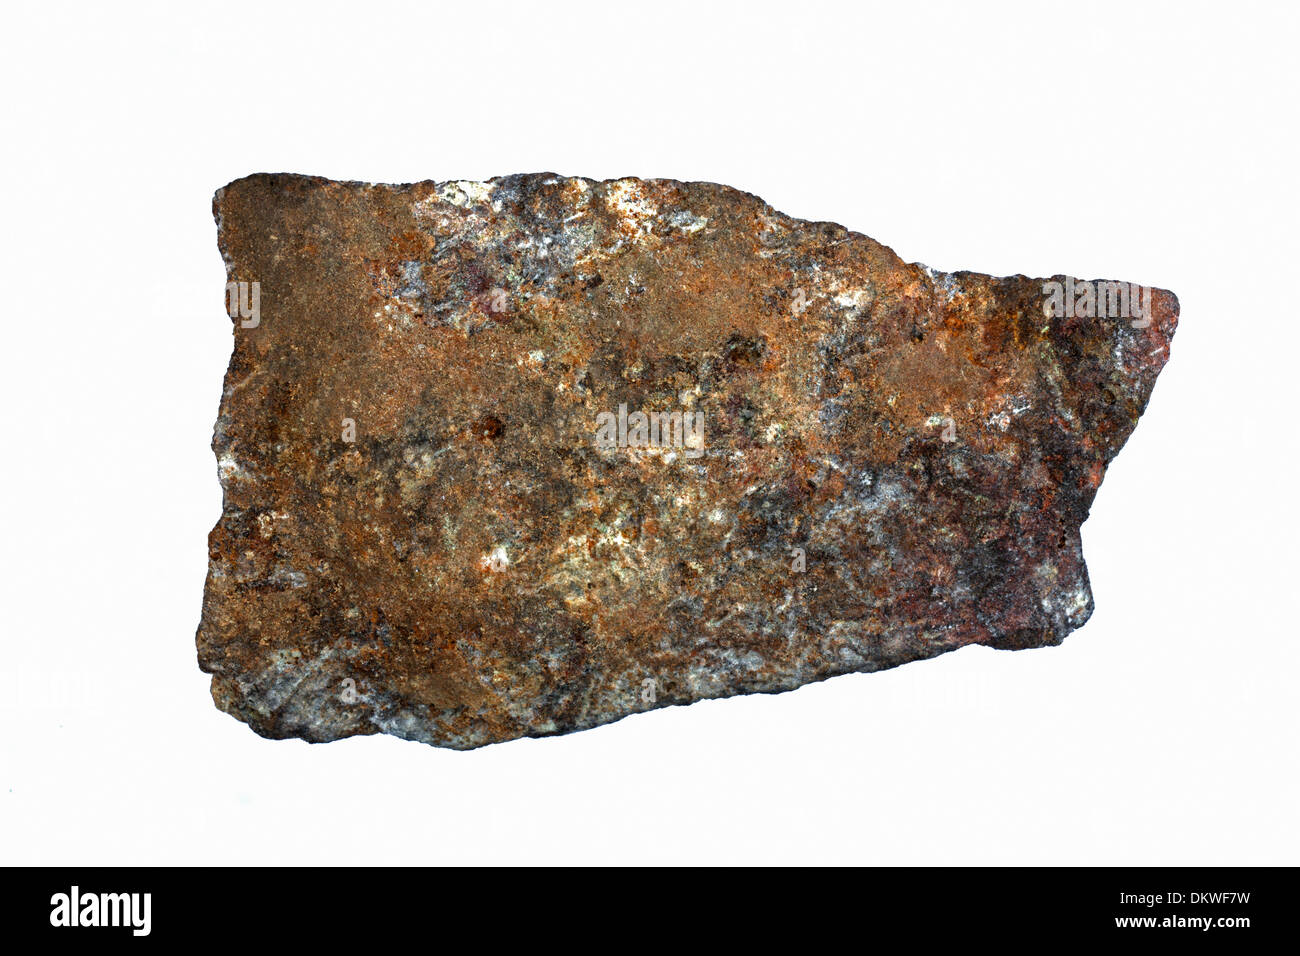 Fragment of black smoker chimney from deep sea ocean vent, composed of sulfide minerals - Stock Image